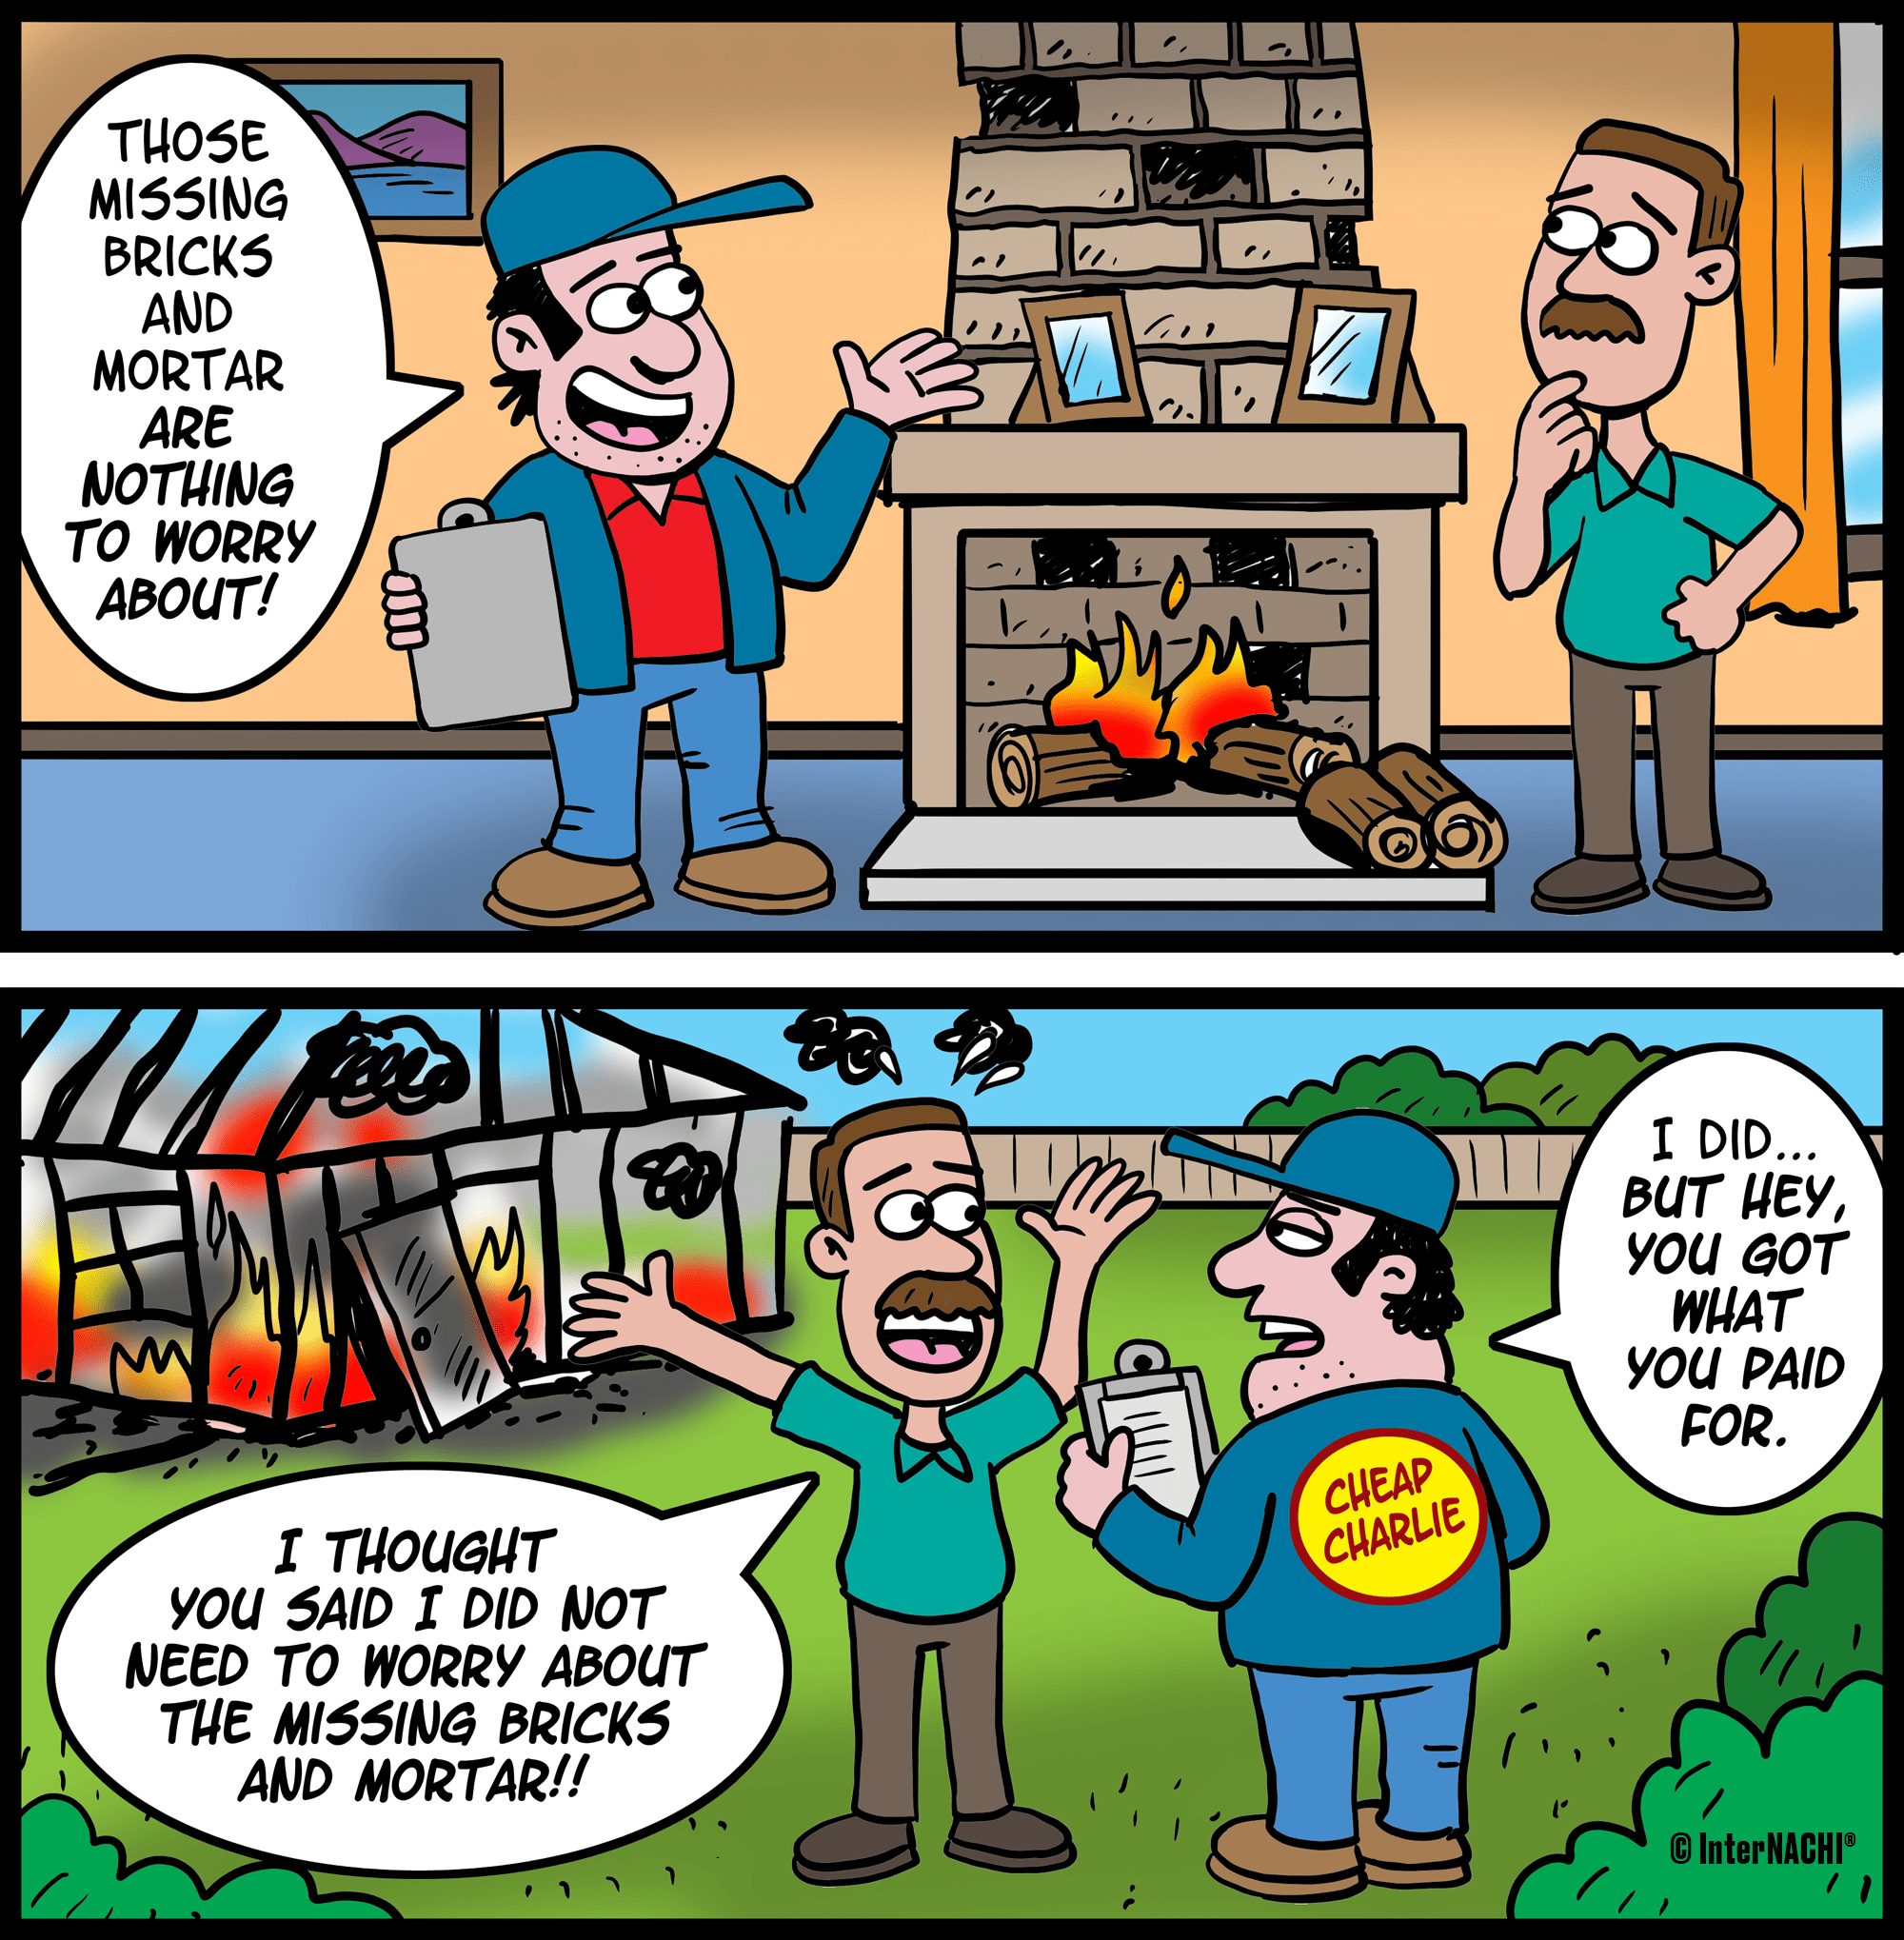 The Chimney Inspection Home Inspection Cartoon